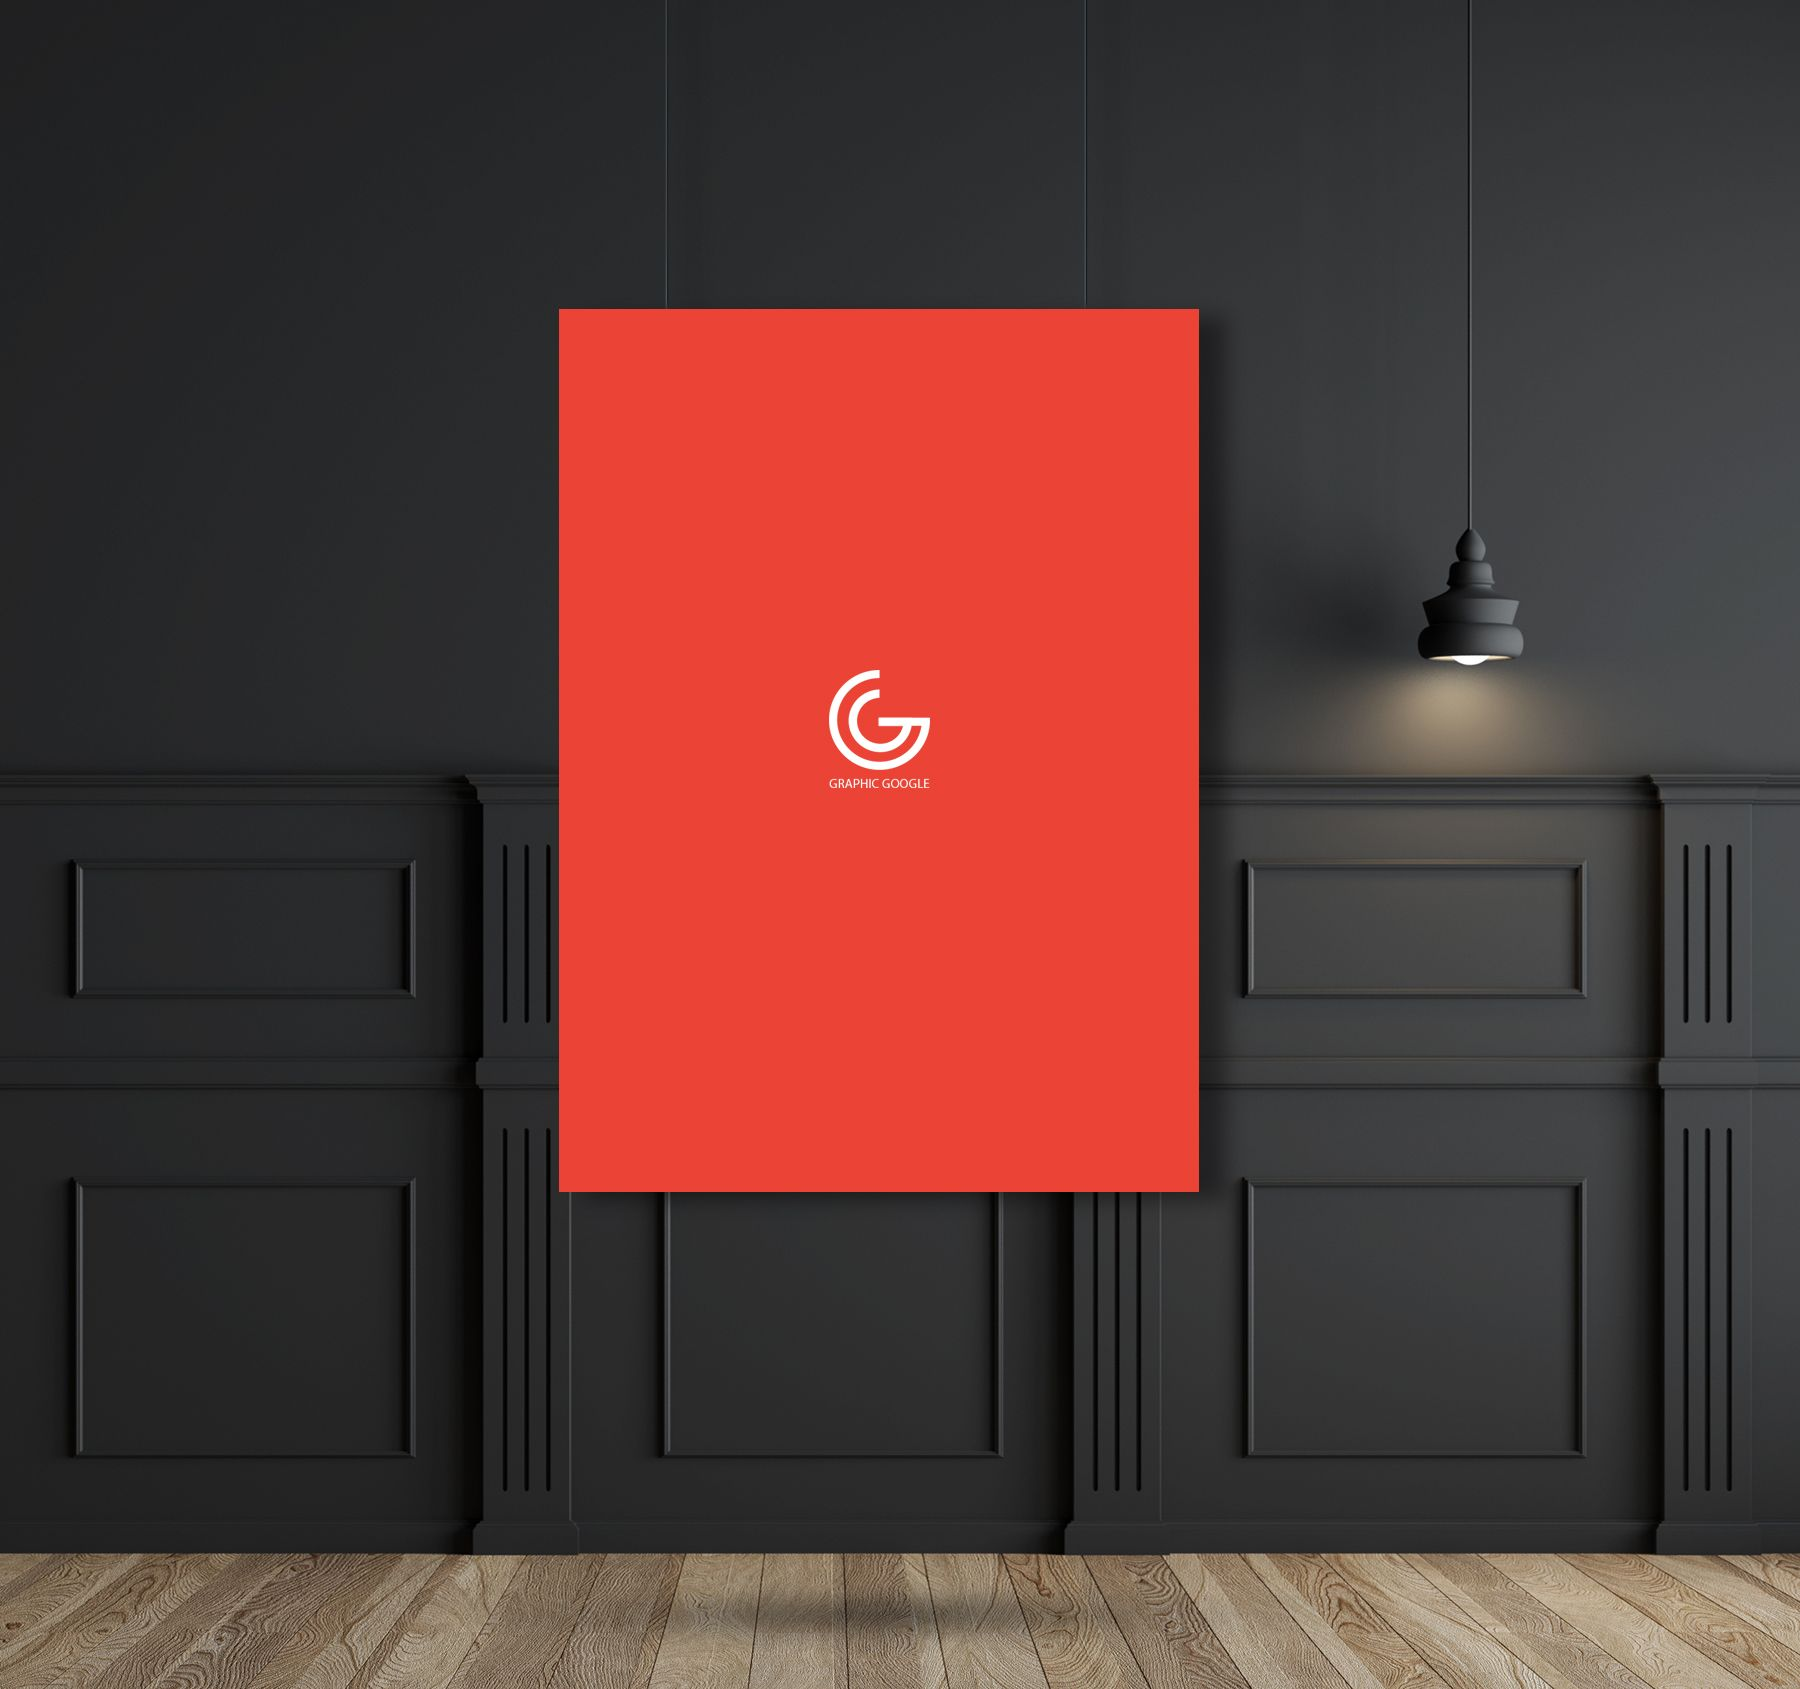 Free poster design and print - Free Poster Mockup Psd Templates For Your Designs